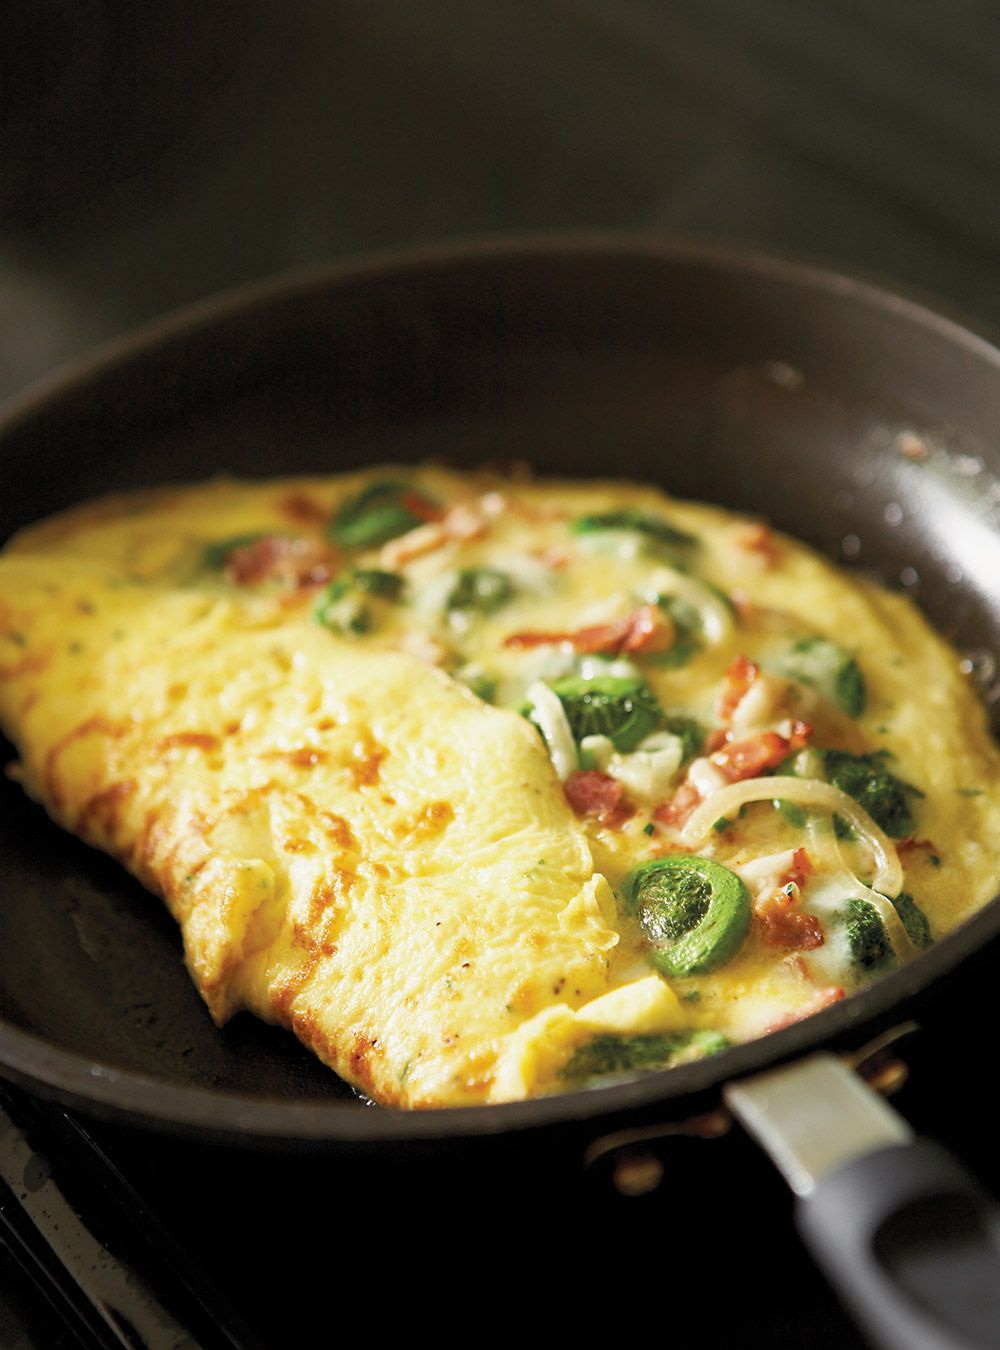 Ricardos recipes fiddlehead omelet incredibly edible pinterest whether you prefer them loaded with your favourite veggies and meats or oozing with cheese these tasty omelette recipes are sure to satisfy forumfinder Choice Image